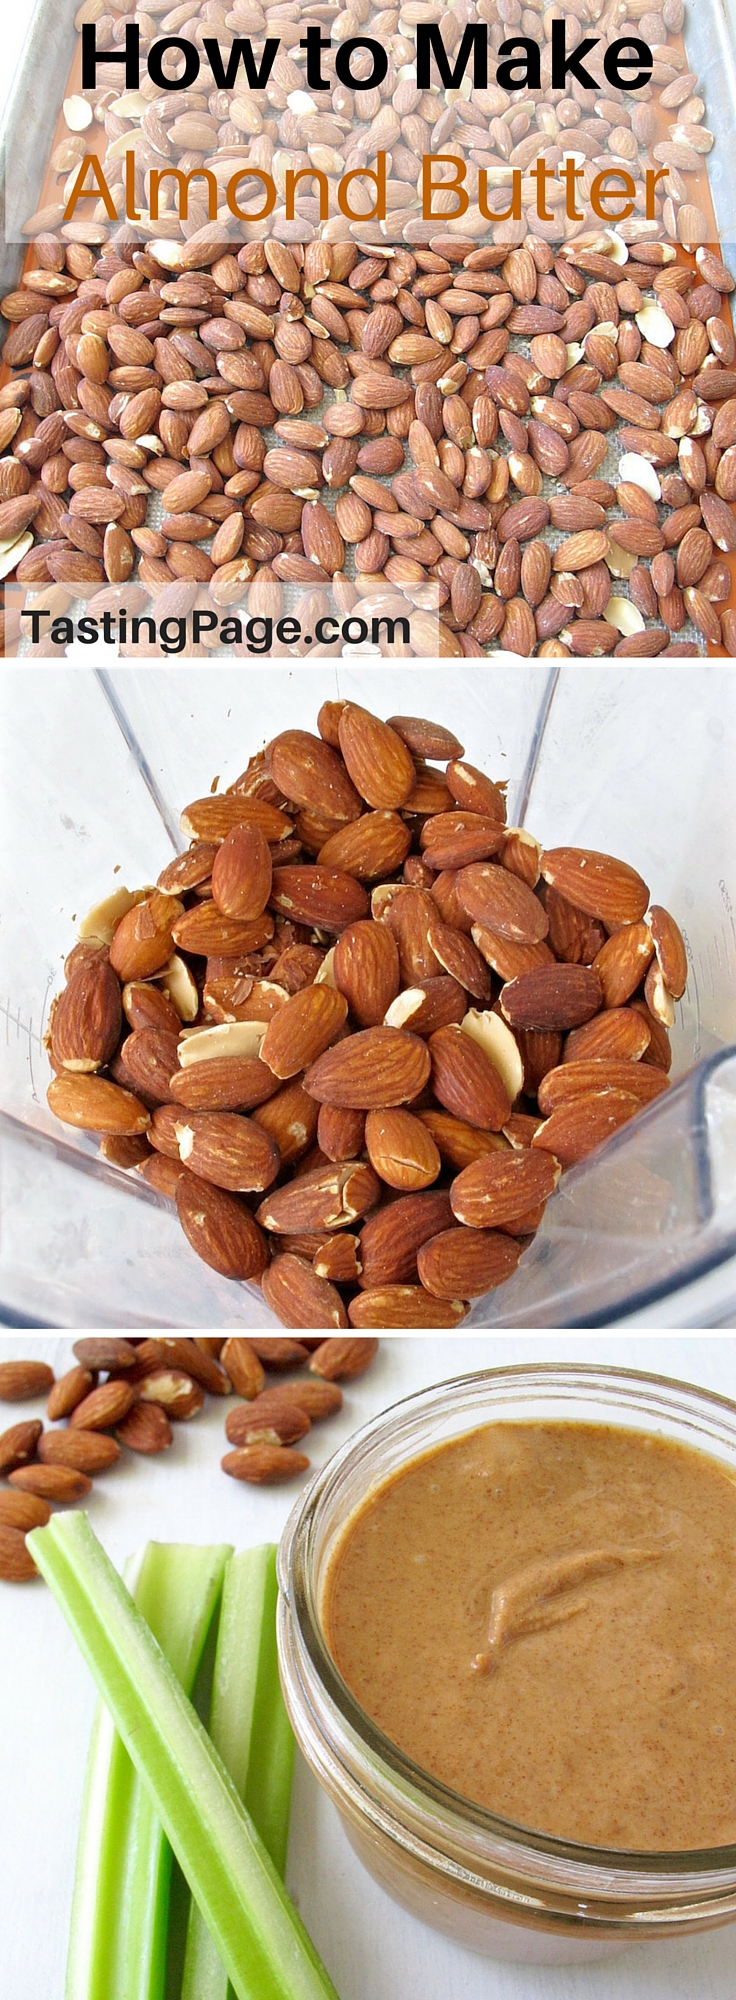 How to Make Almond Butter | TastingPage.com